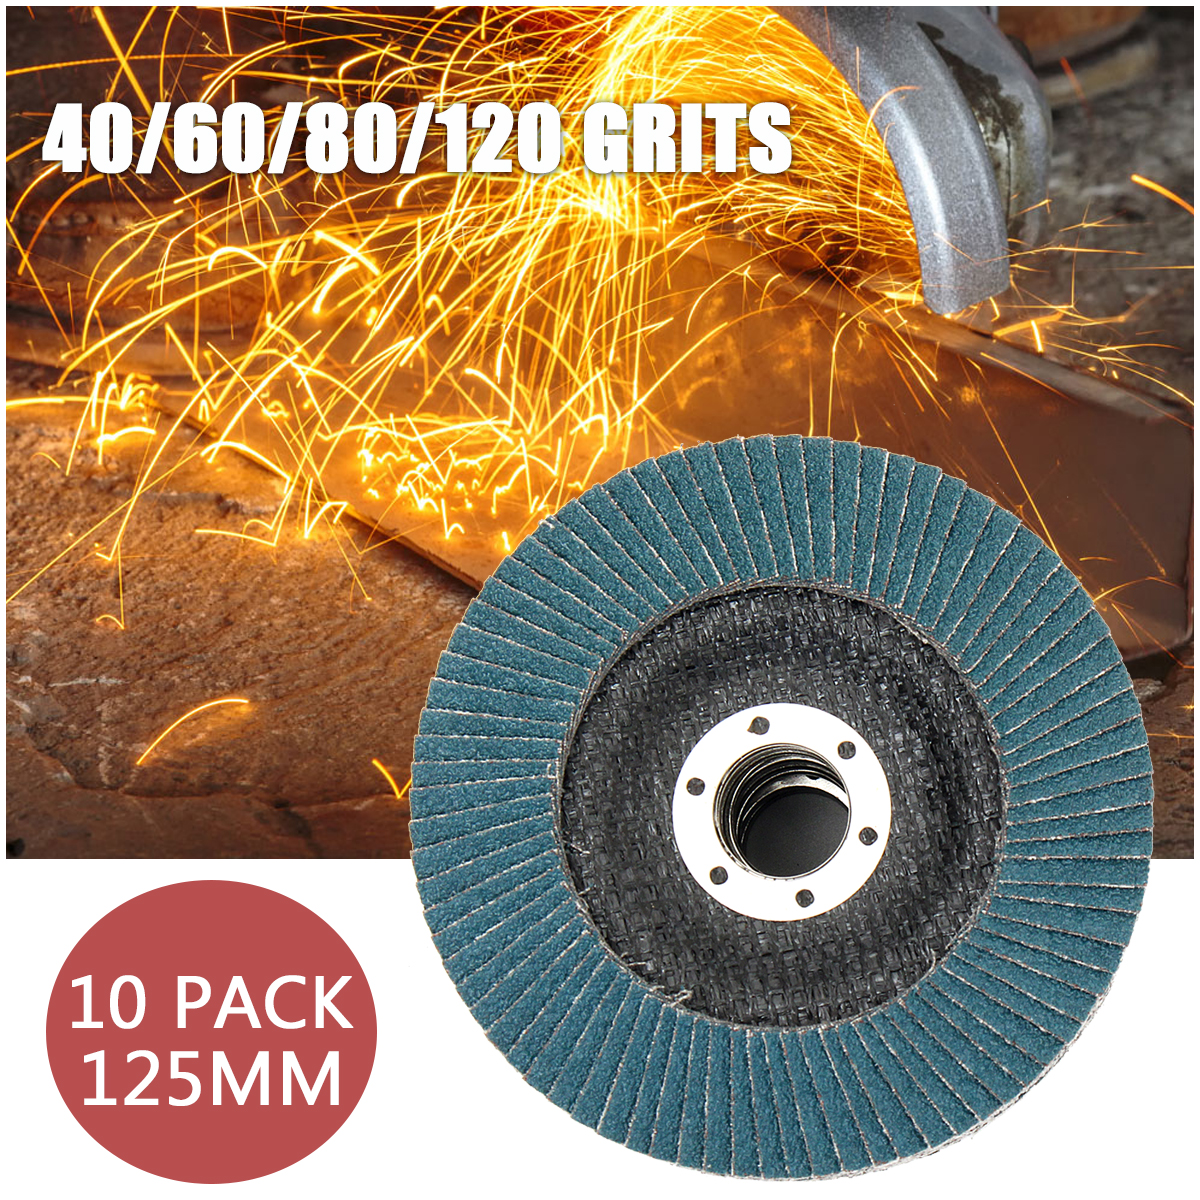 sourcing map 1.2-inch Flap Wheel 120 Grits 1//4-inch Shank Sanding Disc Abrasive Wheel 2 Pcs